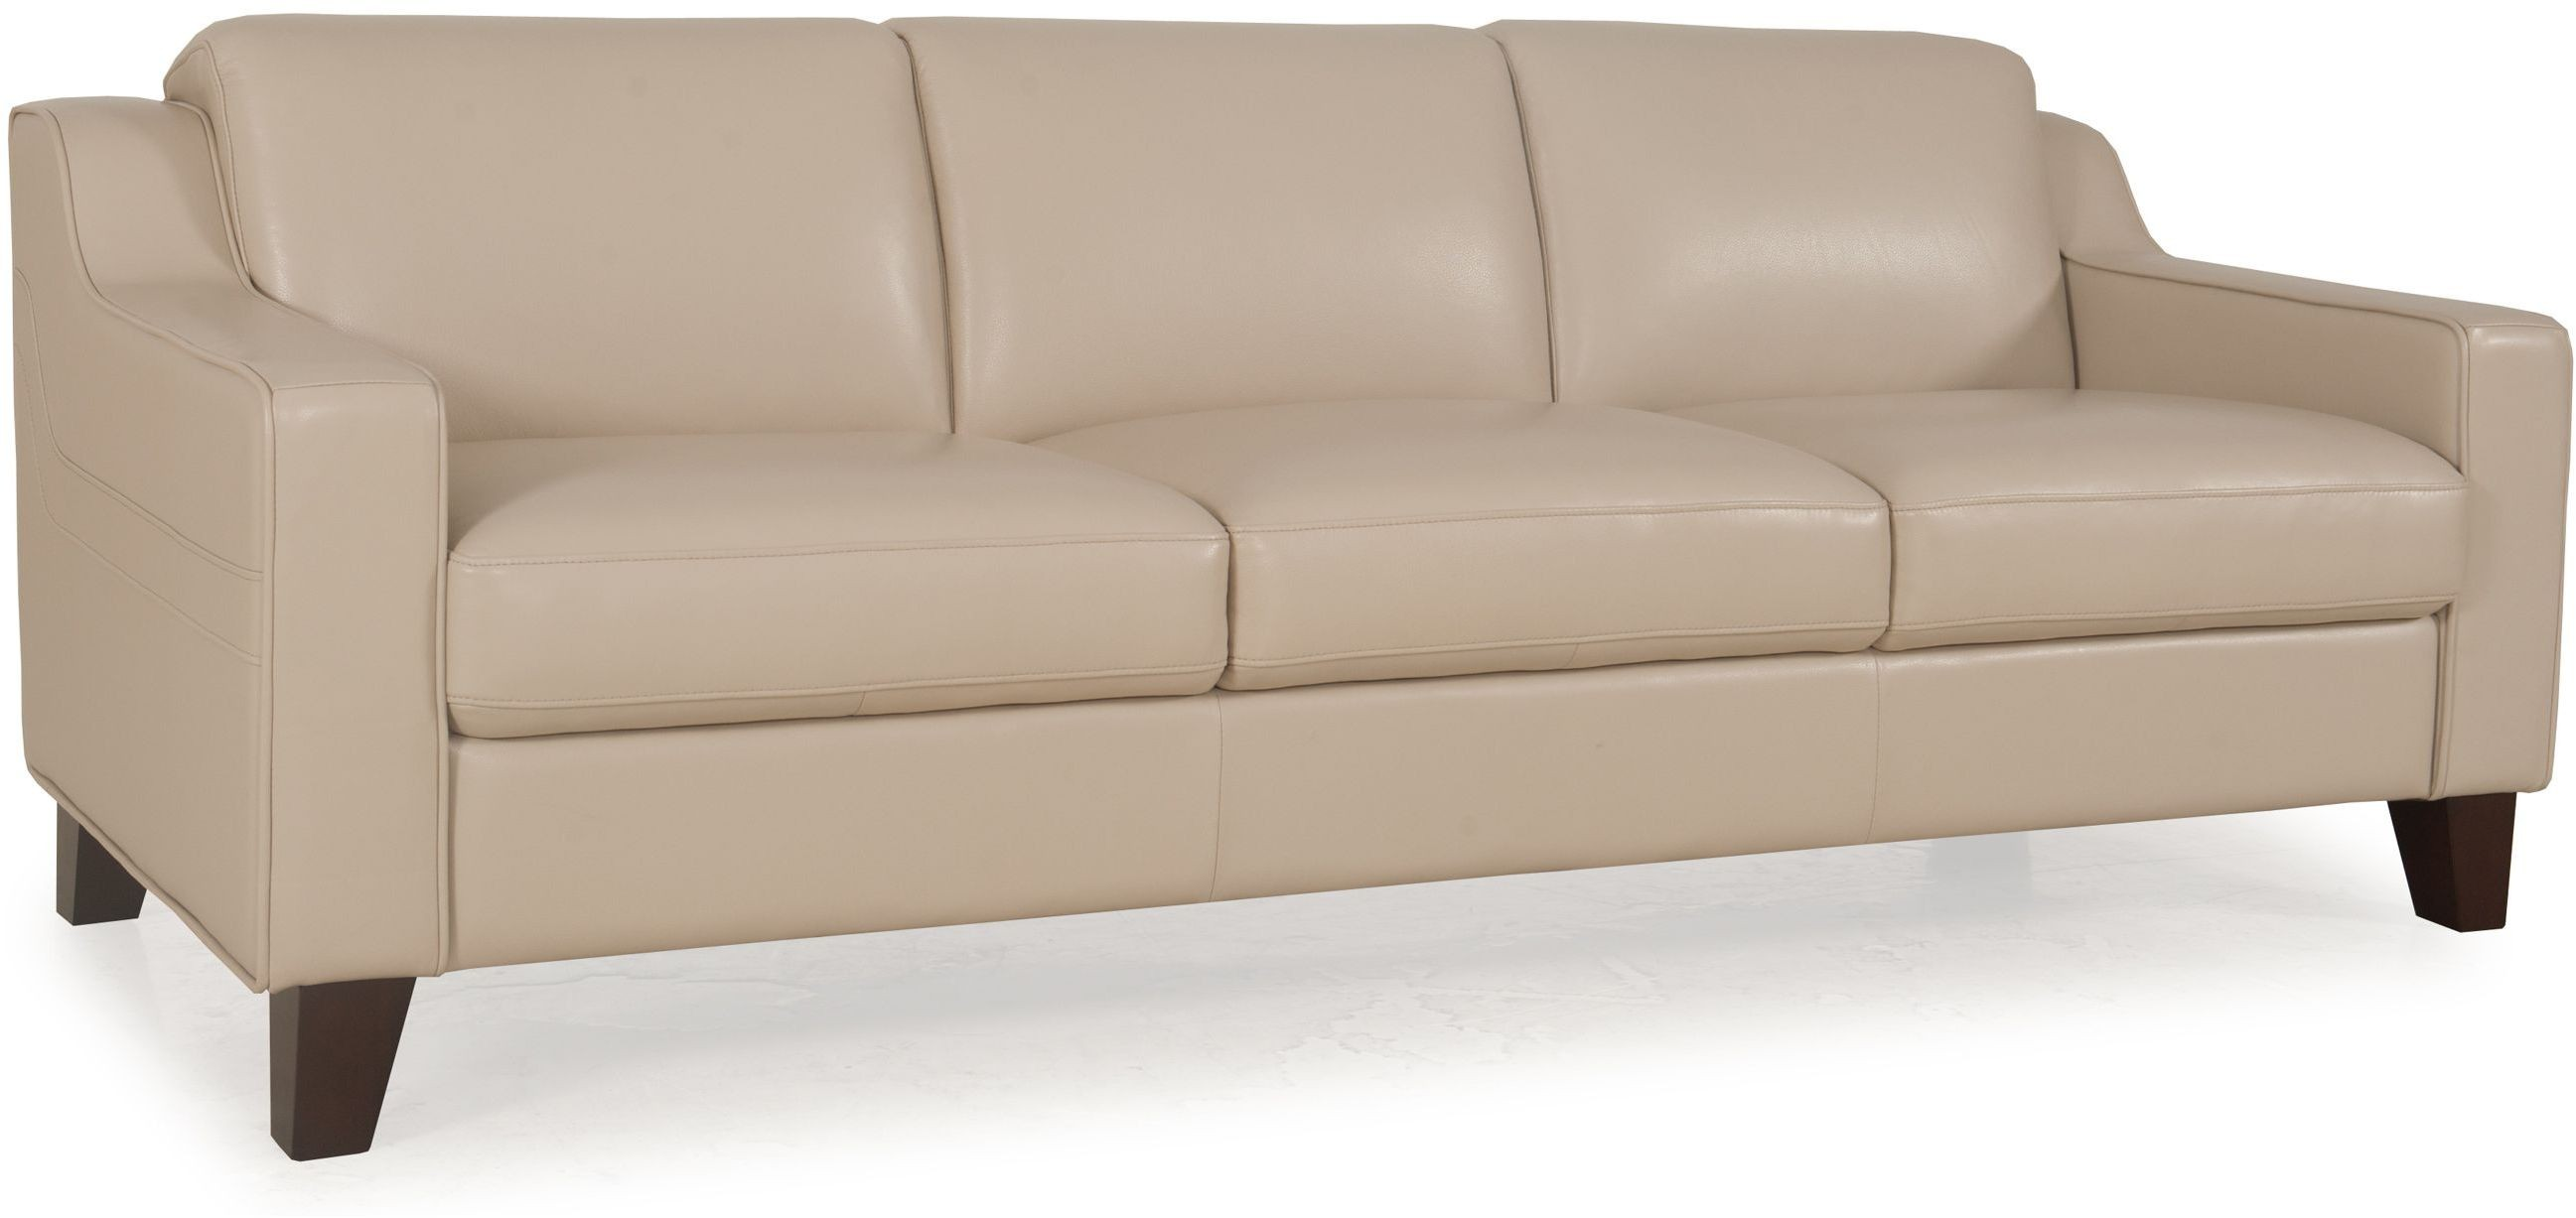 Cora Putty Top Grain Leather Sofa From Moroni Coleman